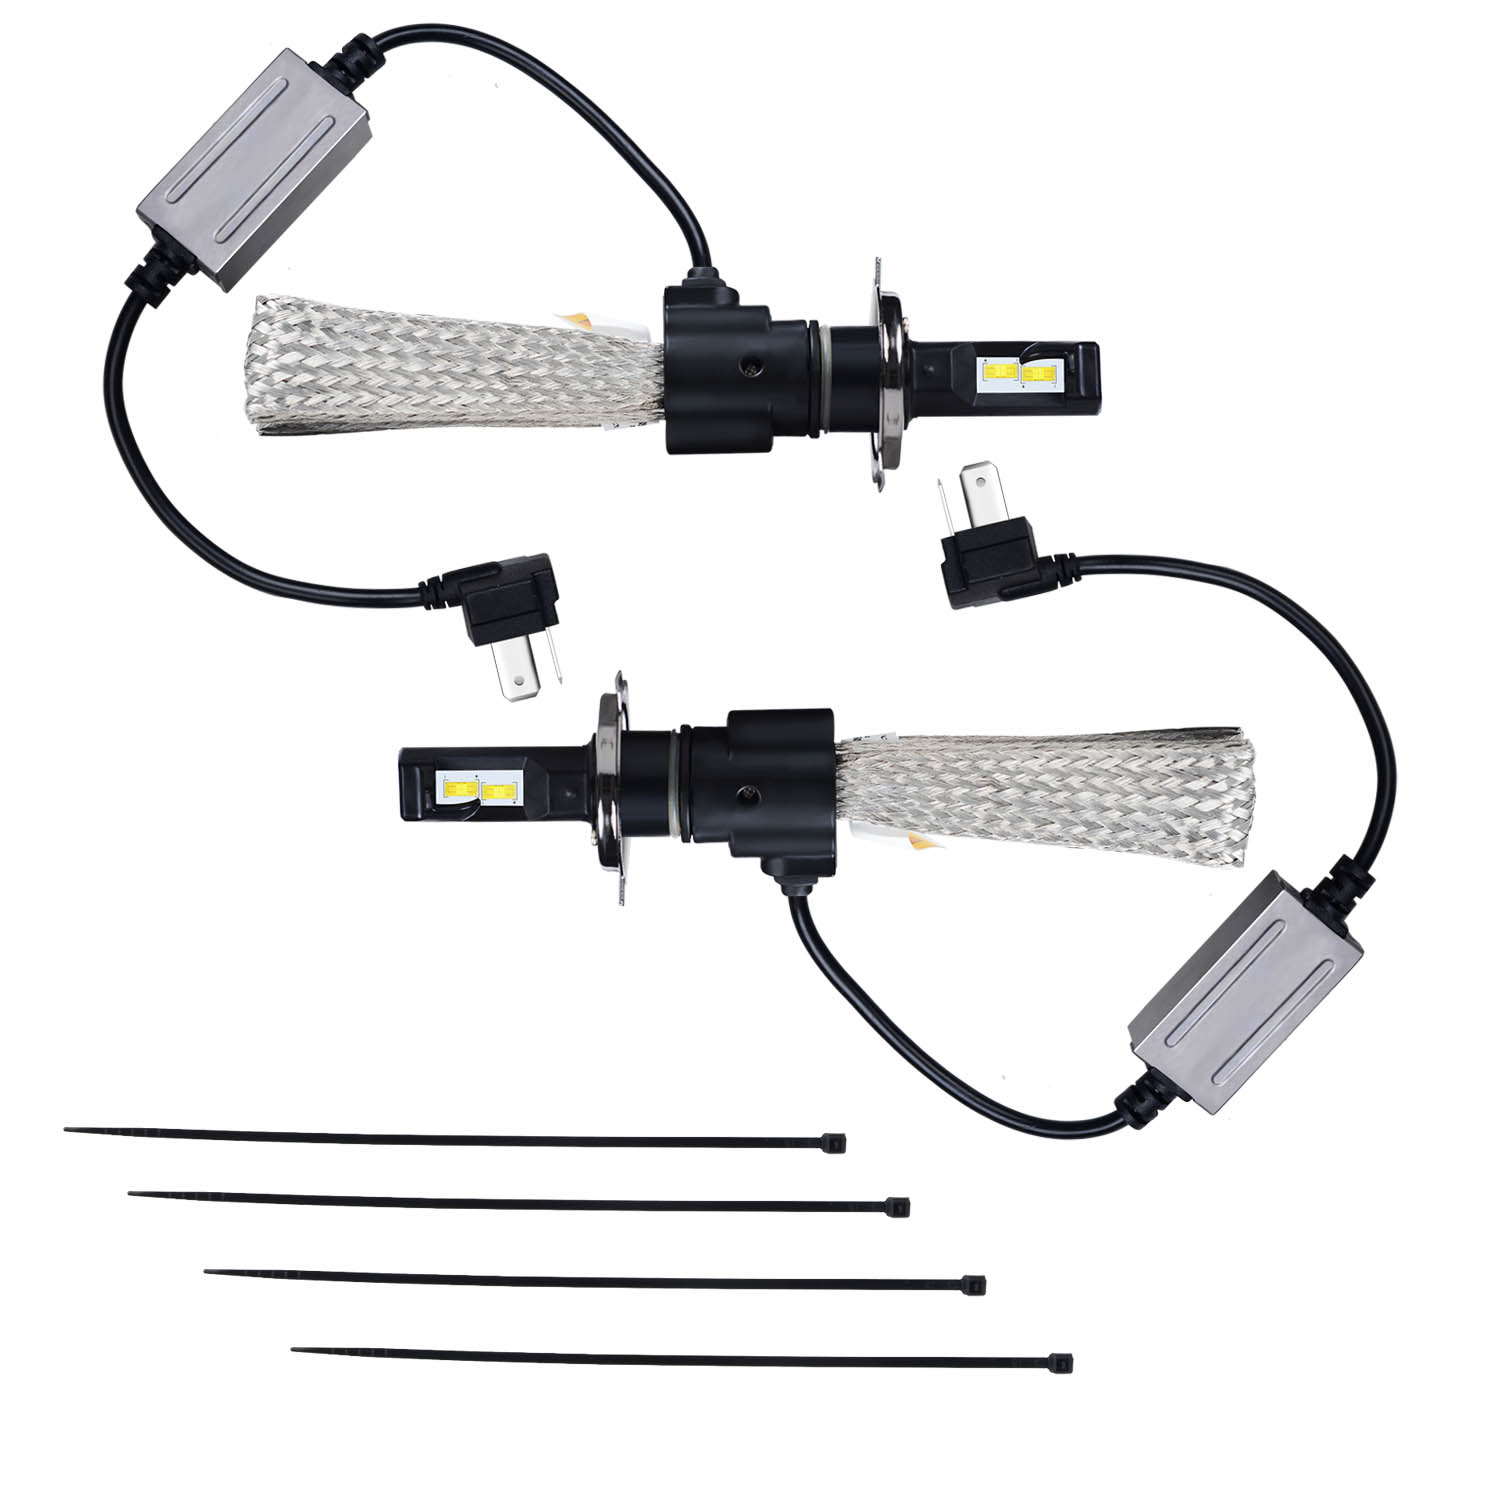 KAWELL LED Headlight Bulbs LED Headlight Conversion Kit - H4 Hi/Lo Beam - 40W*2 7,000LM 6500 Cool White OSRAM LED with Flexible Tinned Copper Braid- 2 Yr Warranty